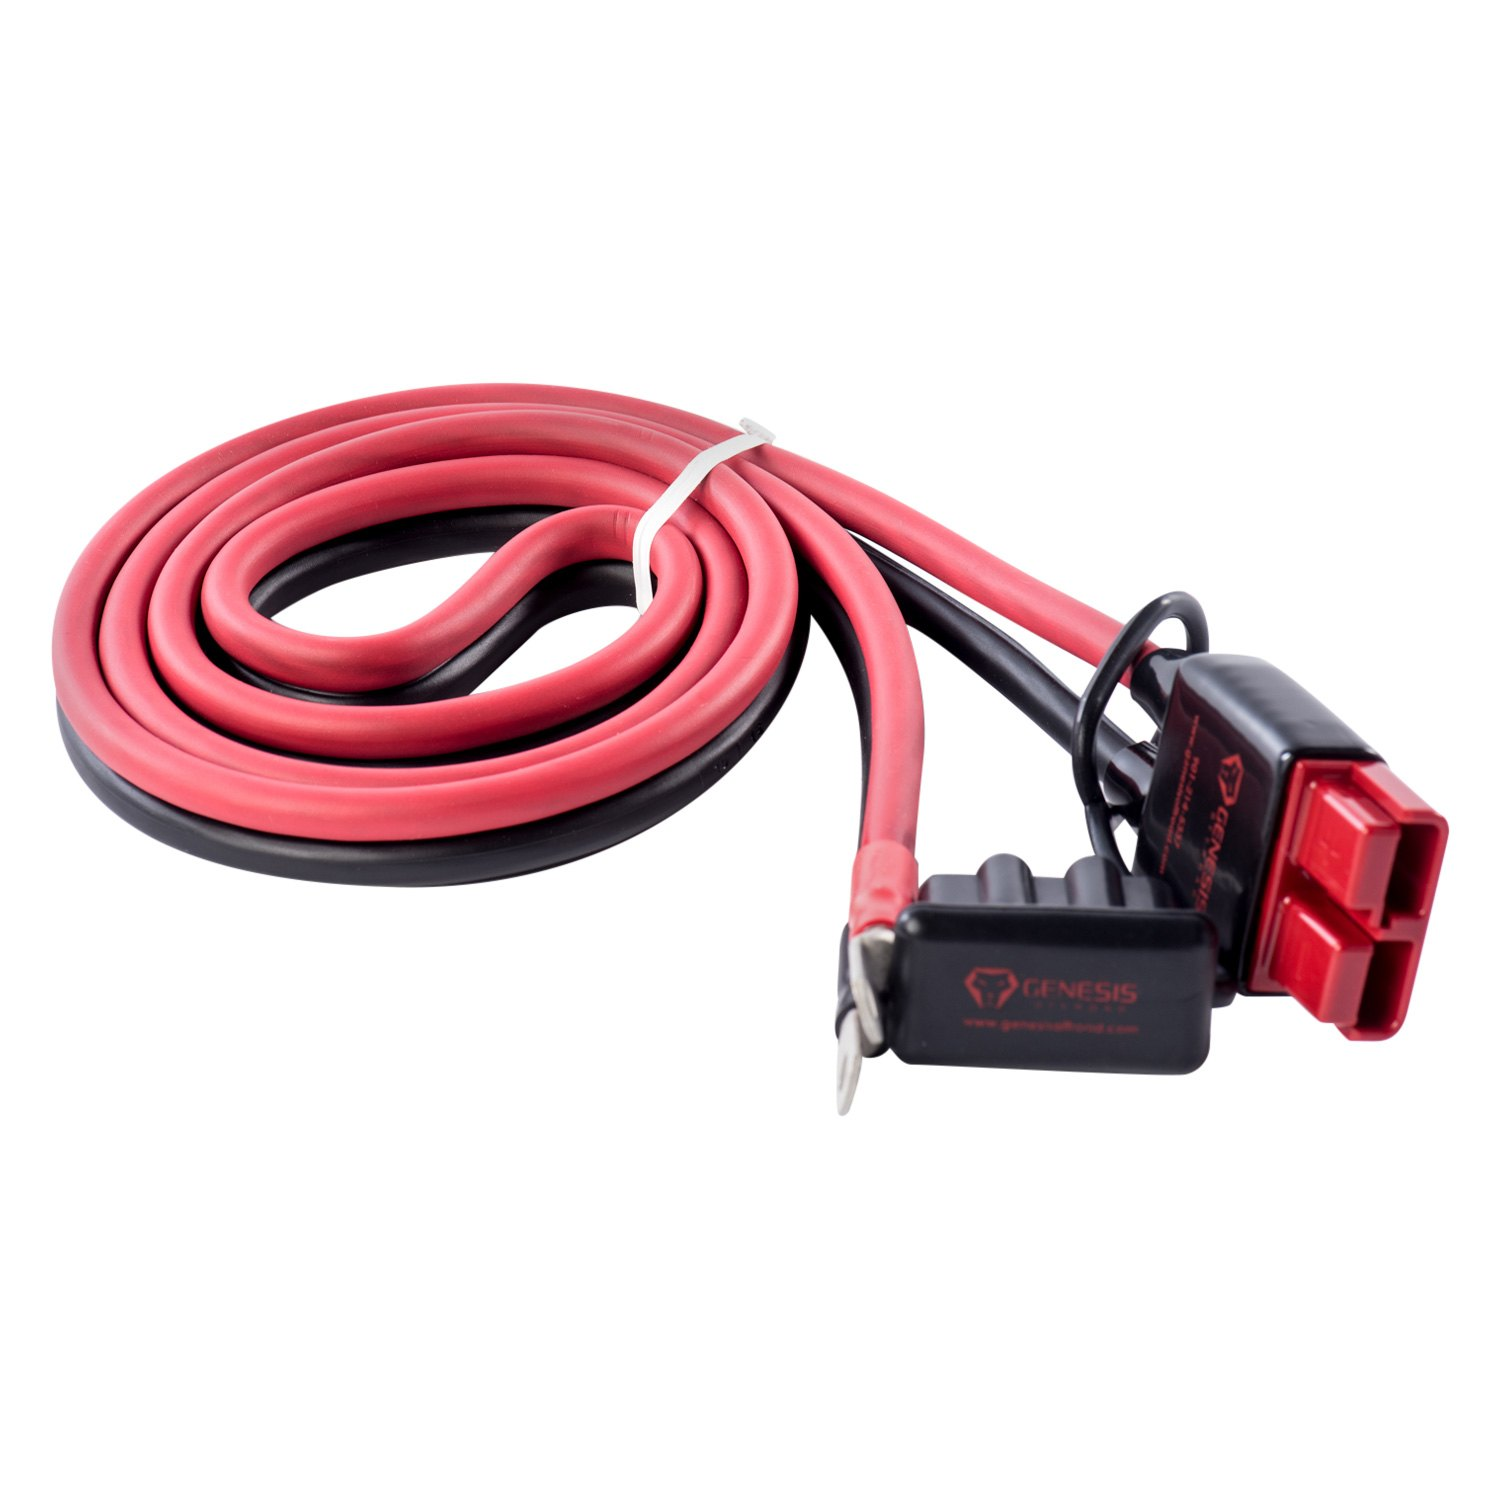 Marvelous Genesis Offroad Gen 163 Qcjc15 15 Quick Connect Jumper Cables Wiring Digital Resources Sapredefiancerspsorg